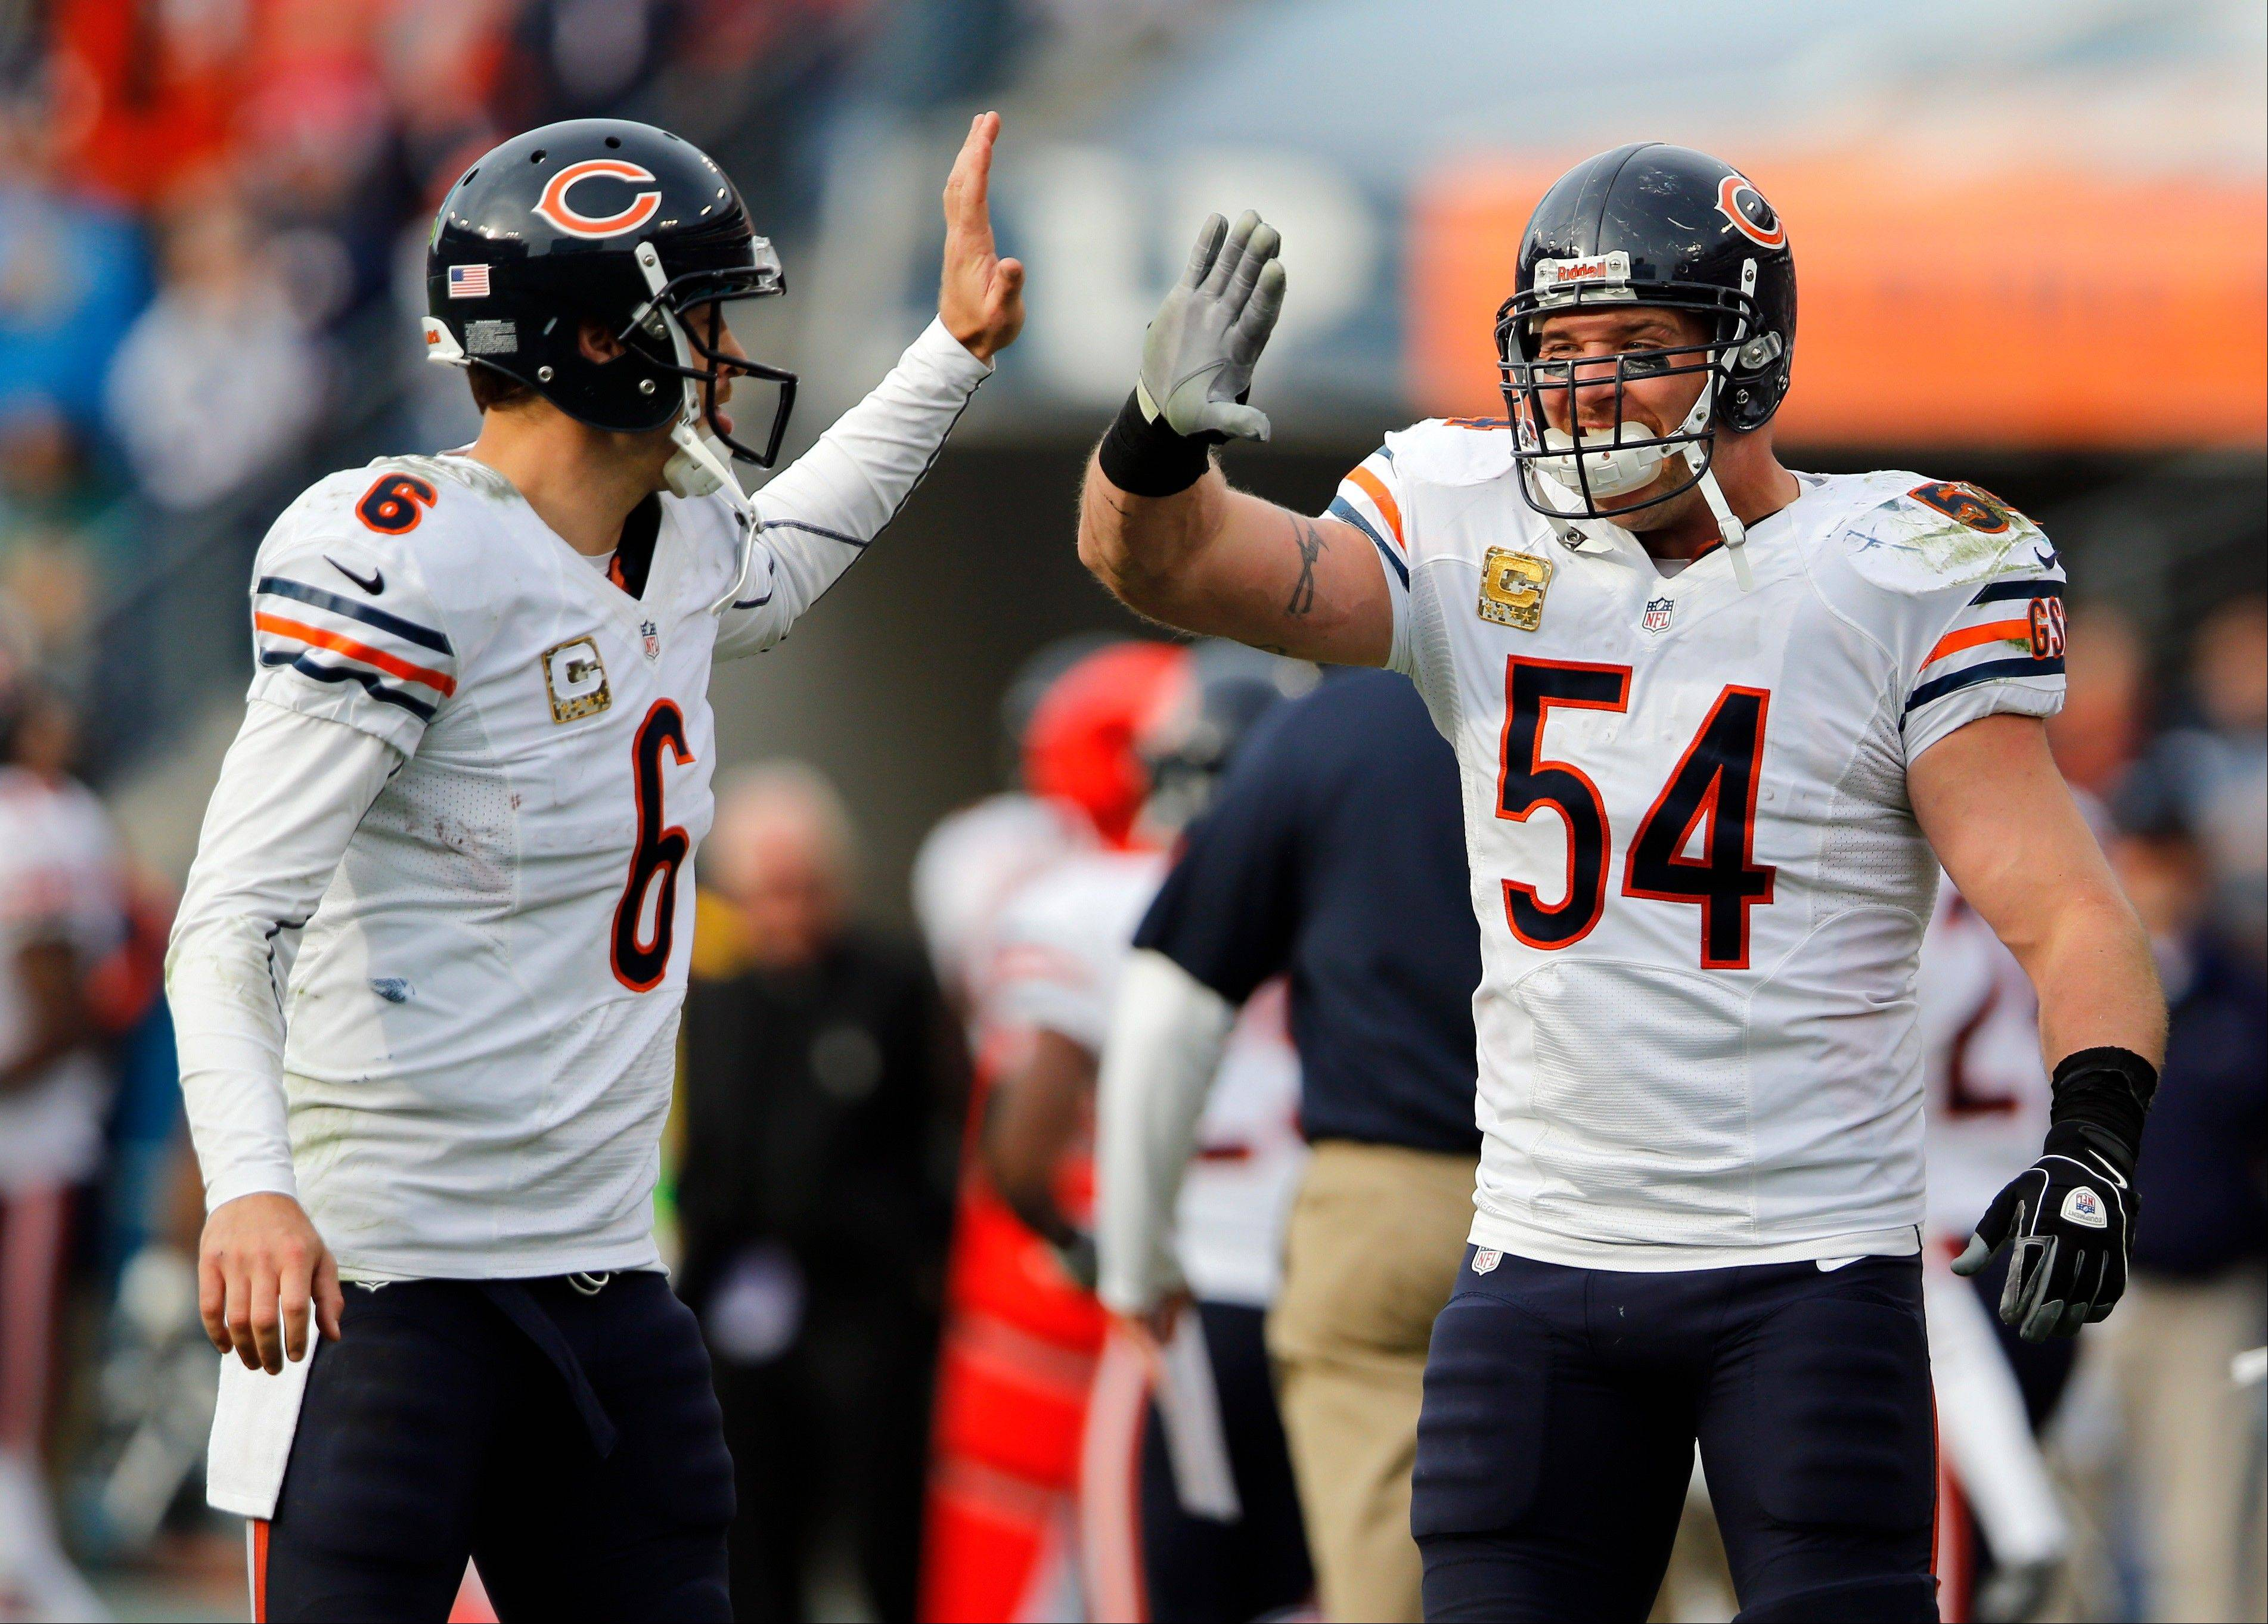 Bears quarterback Jay Cutler, left, and linebacker Brian Urlacher had plenty to celebrate during Sunday's rout of the Titans.